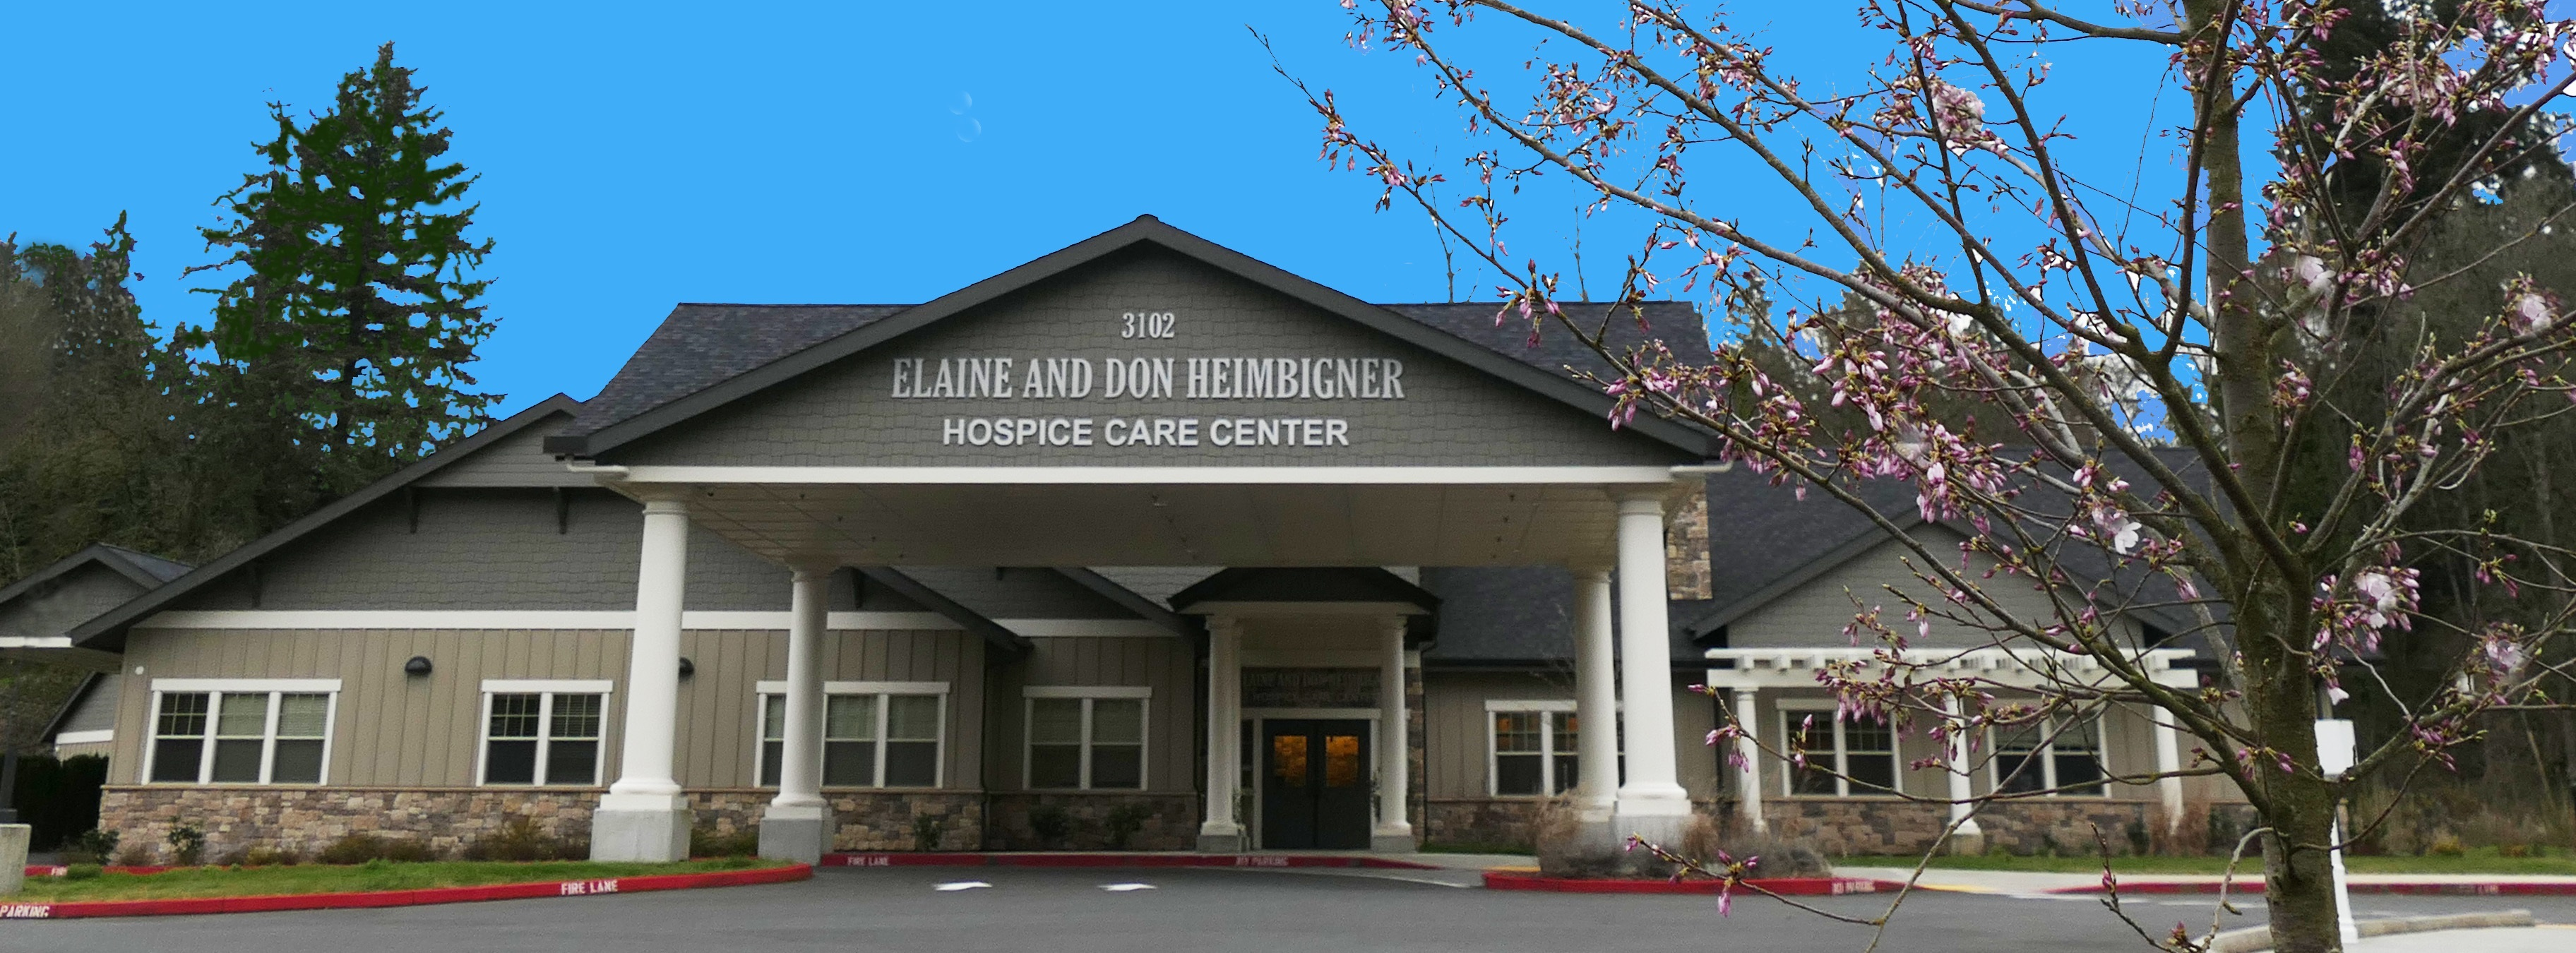 Home care center in San Francisco